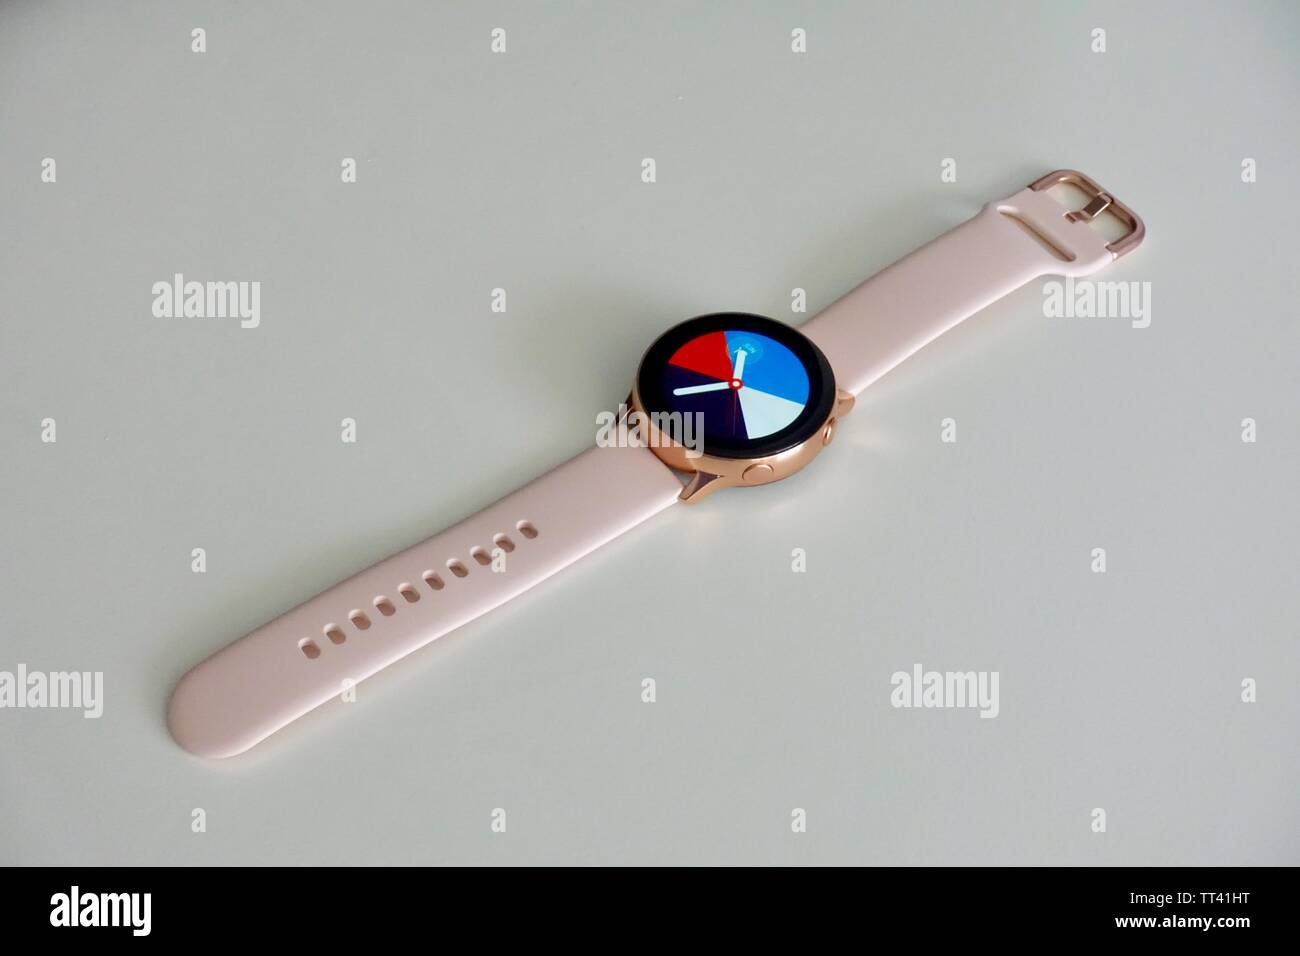 Orlando, FL/USA- 6/7/19: A rose gold Samsung Galaxy Active watch open with a standard watch face. - Stock Image